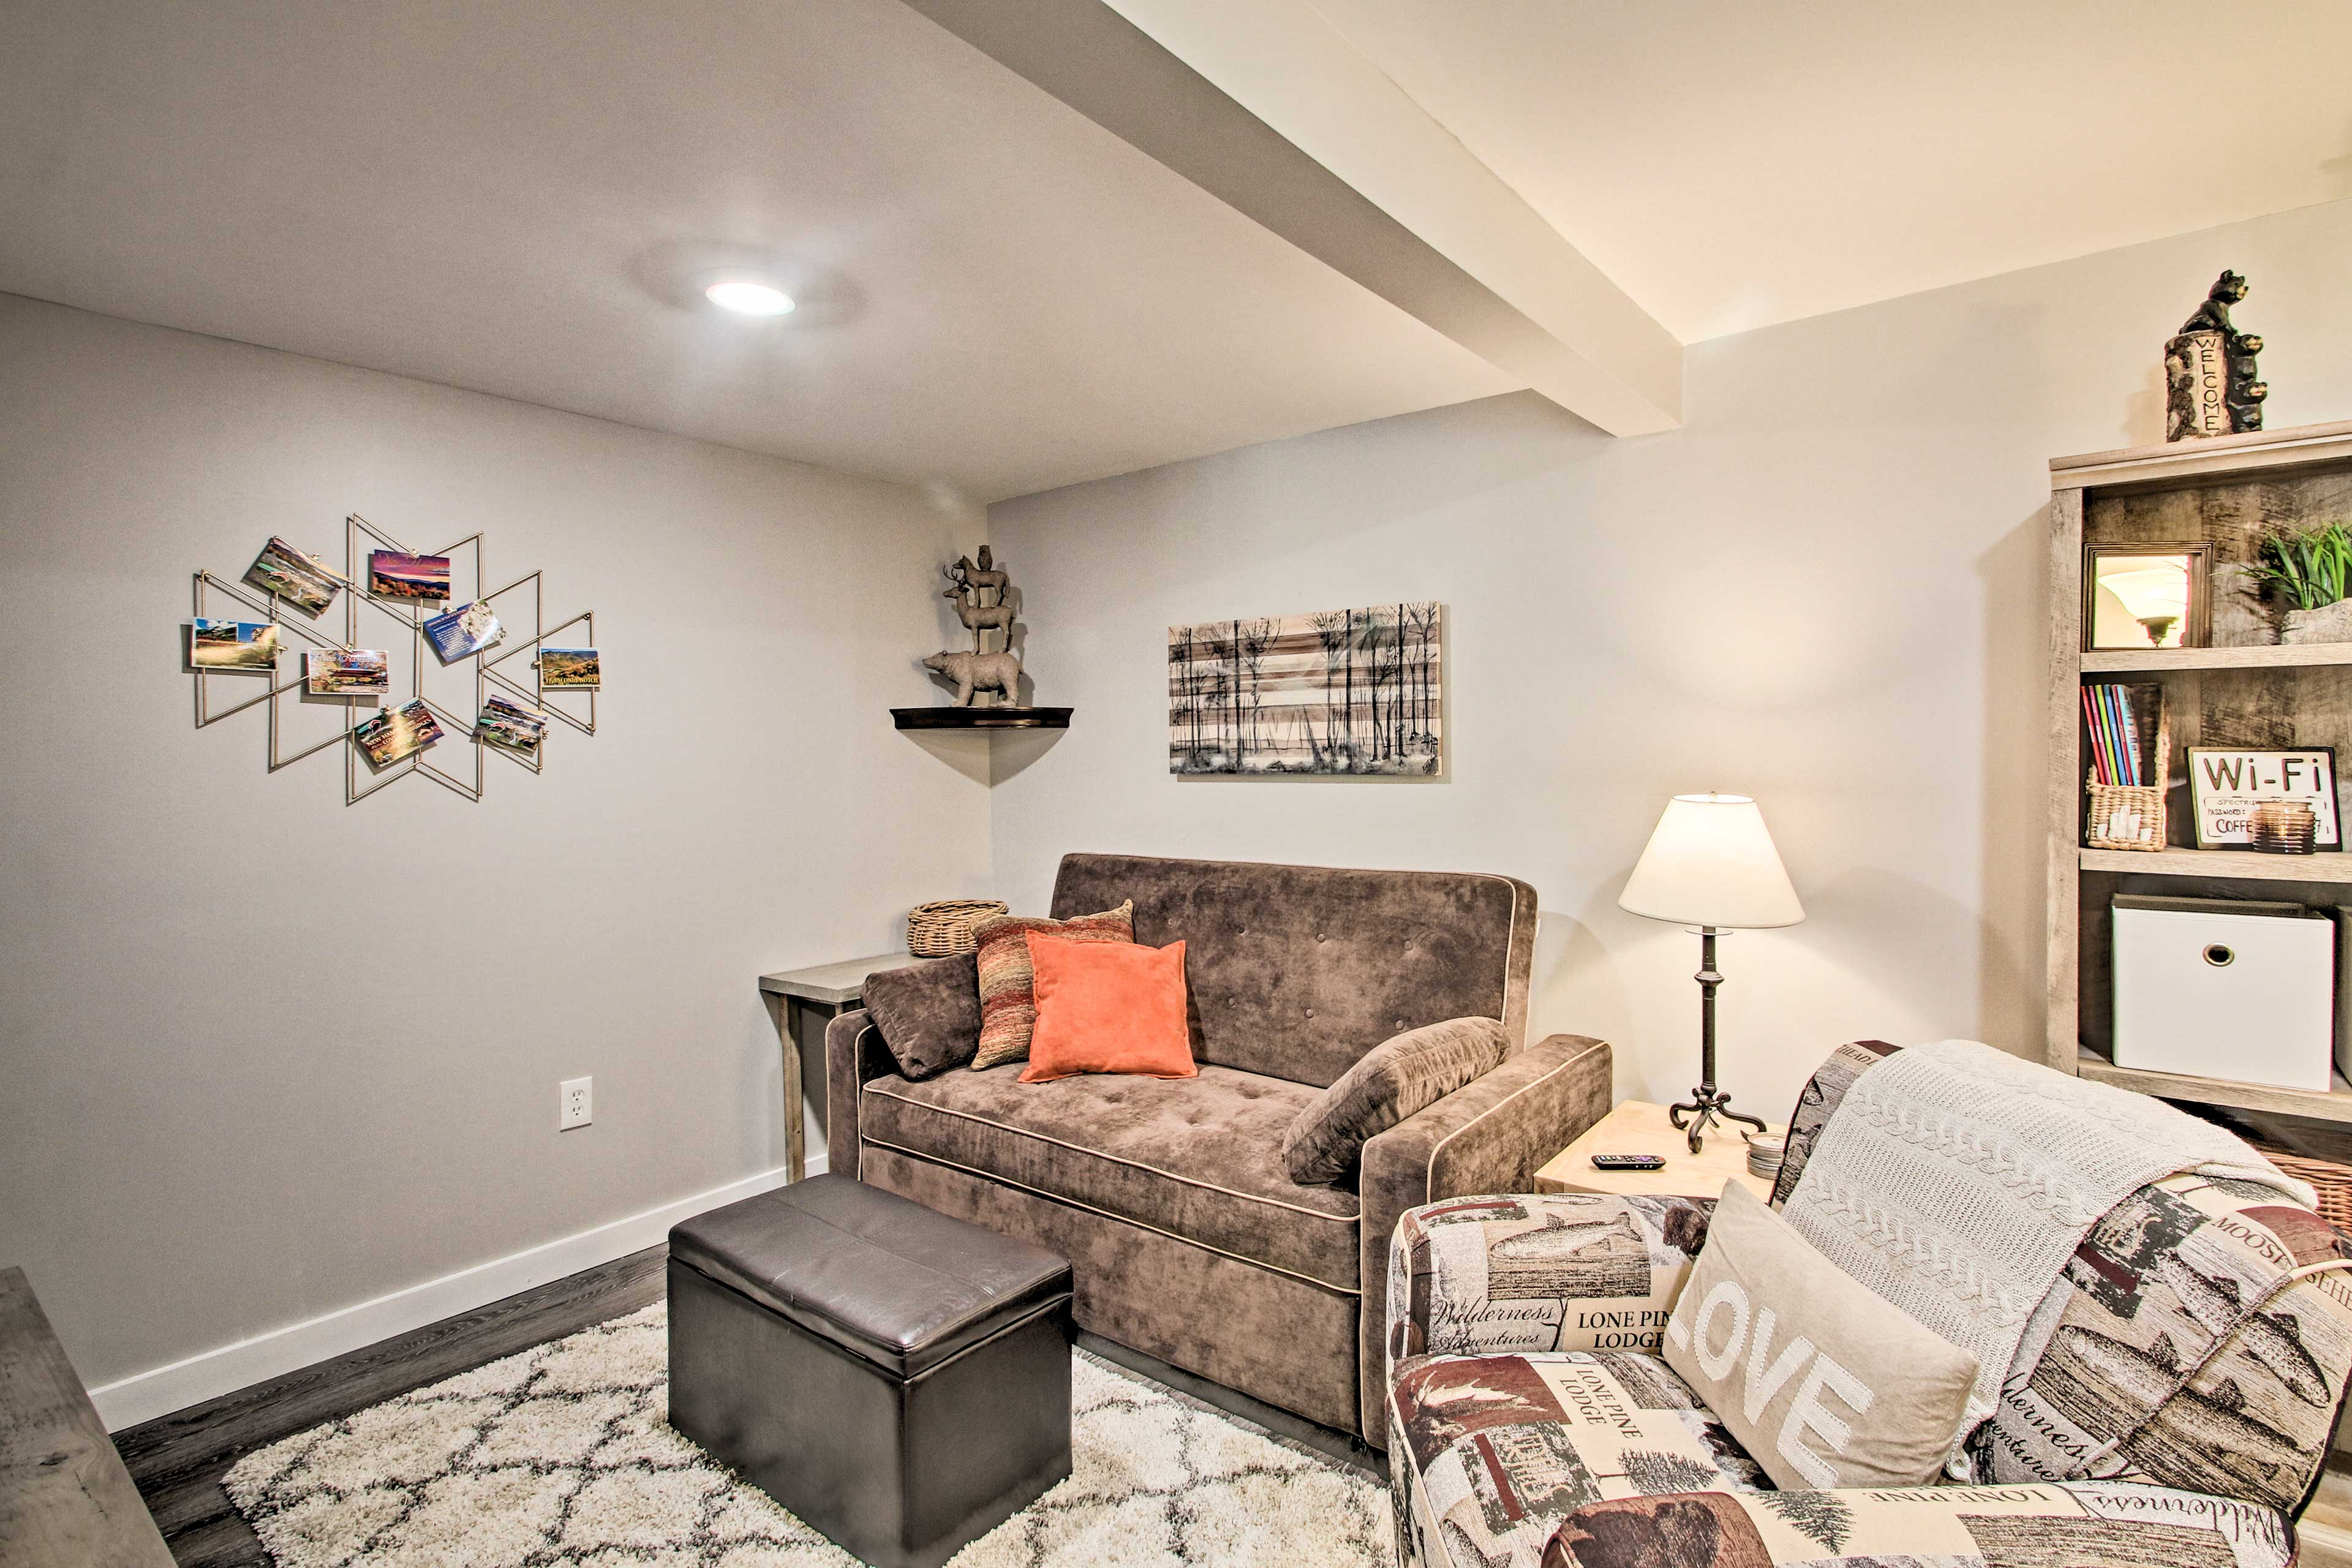 The home includes a lower & upper, both with modern & comfortable furnishings.